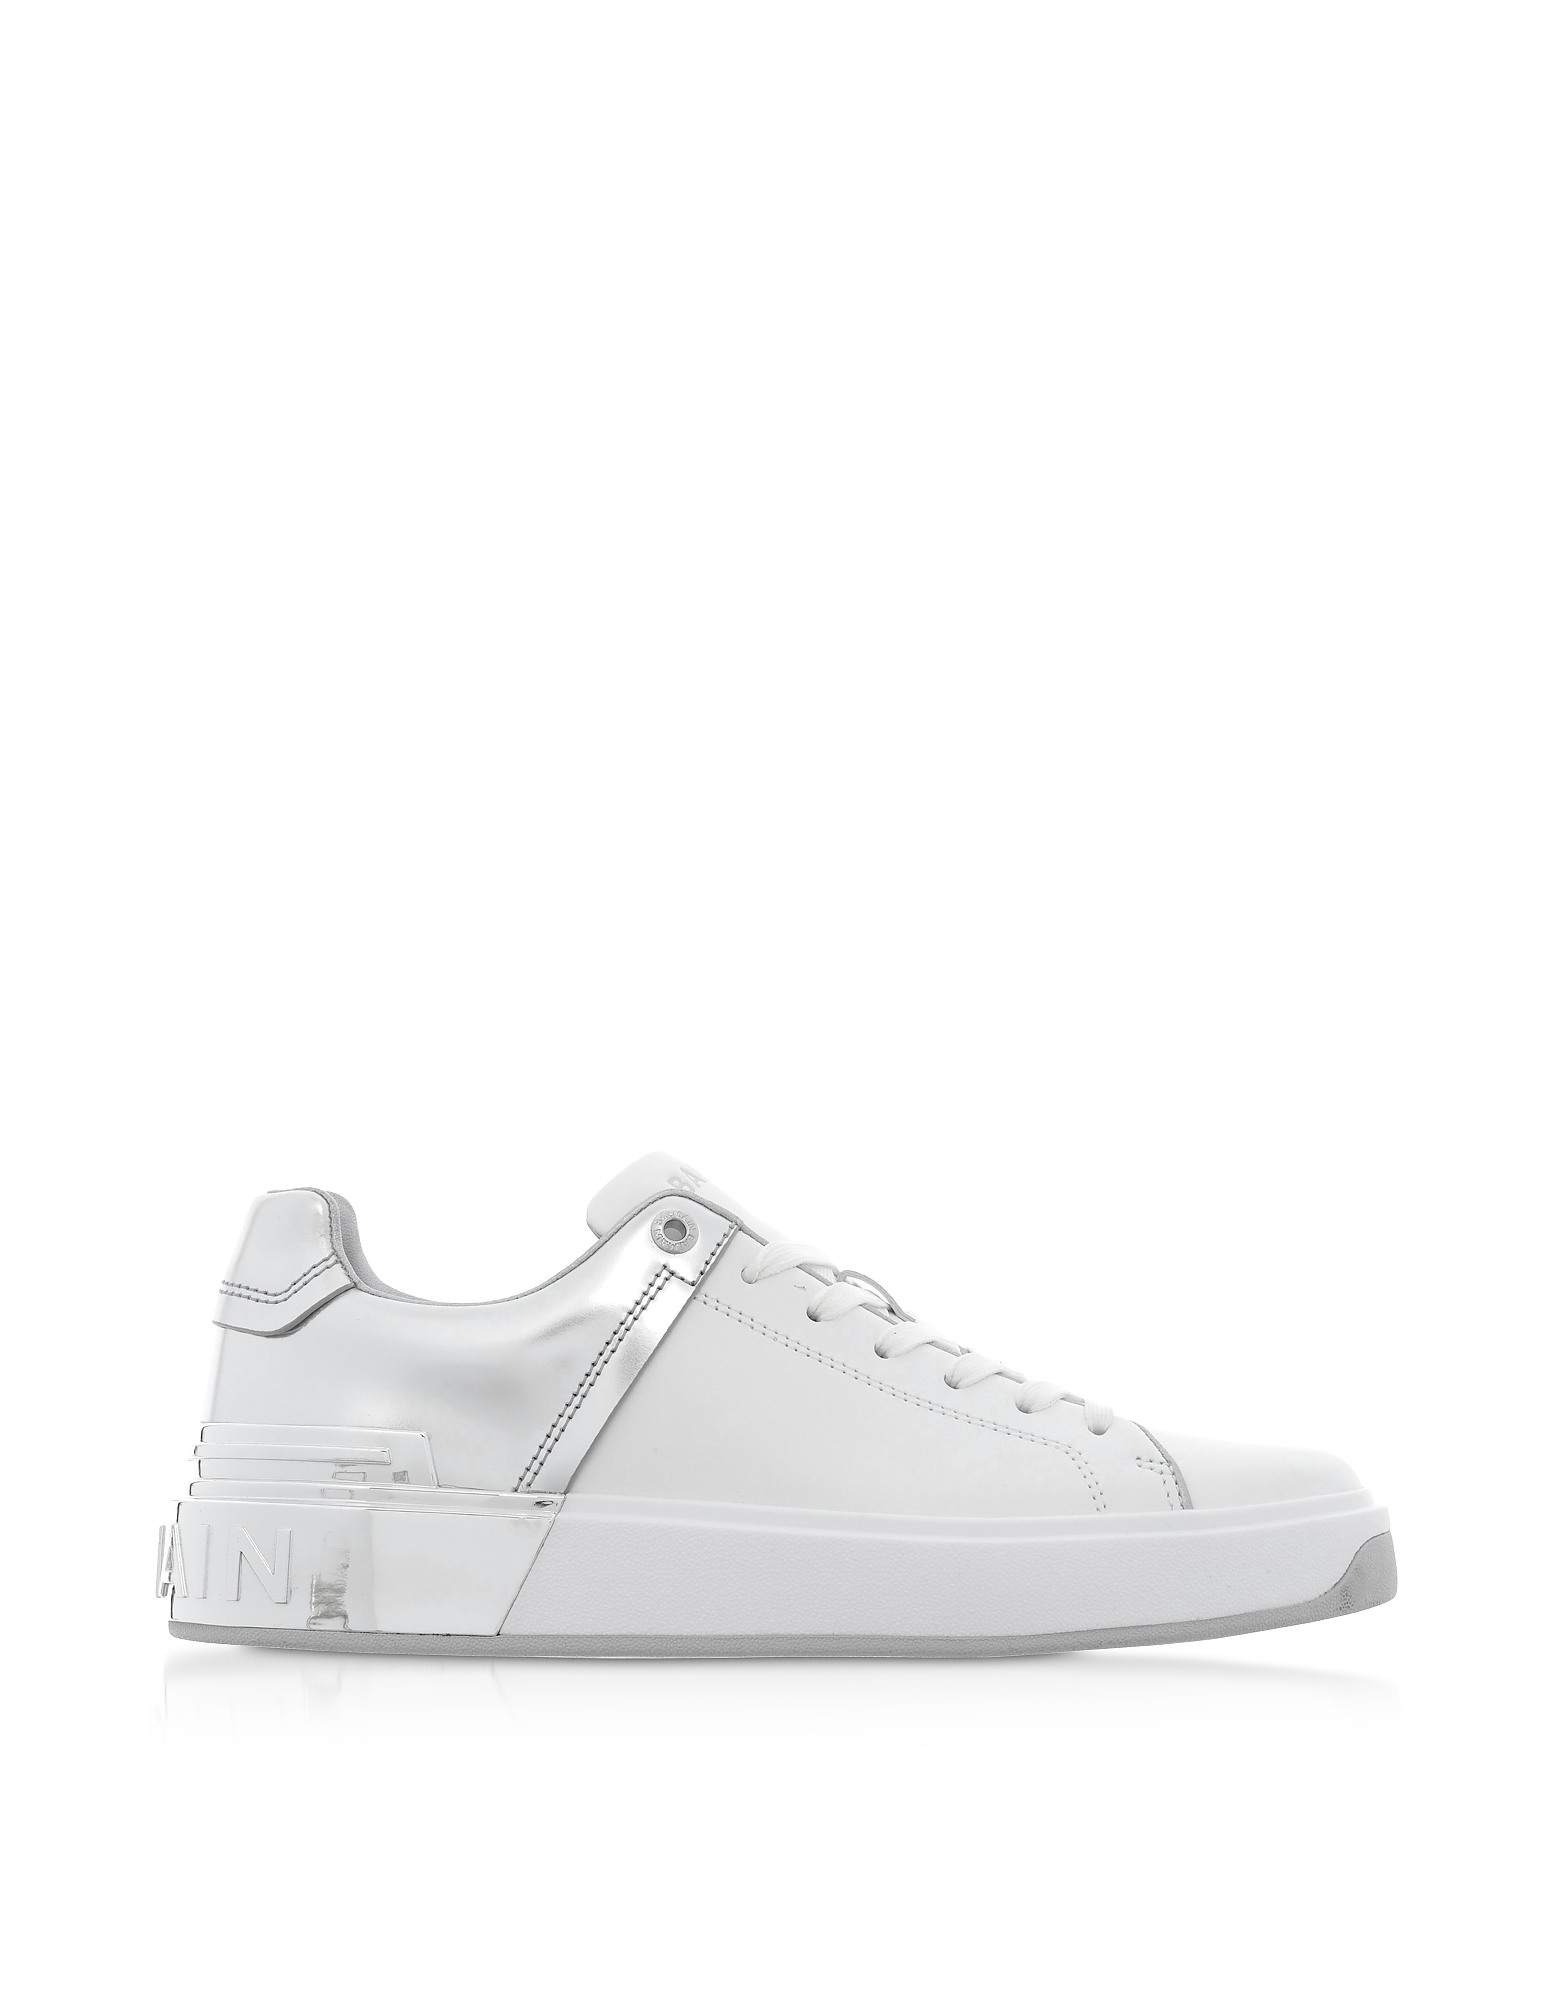 Balmain Designer Shoes, White & Silver Leather Lace up Women's Sneakers